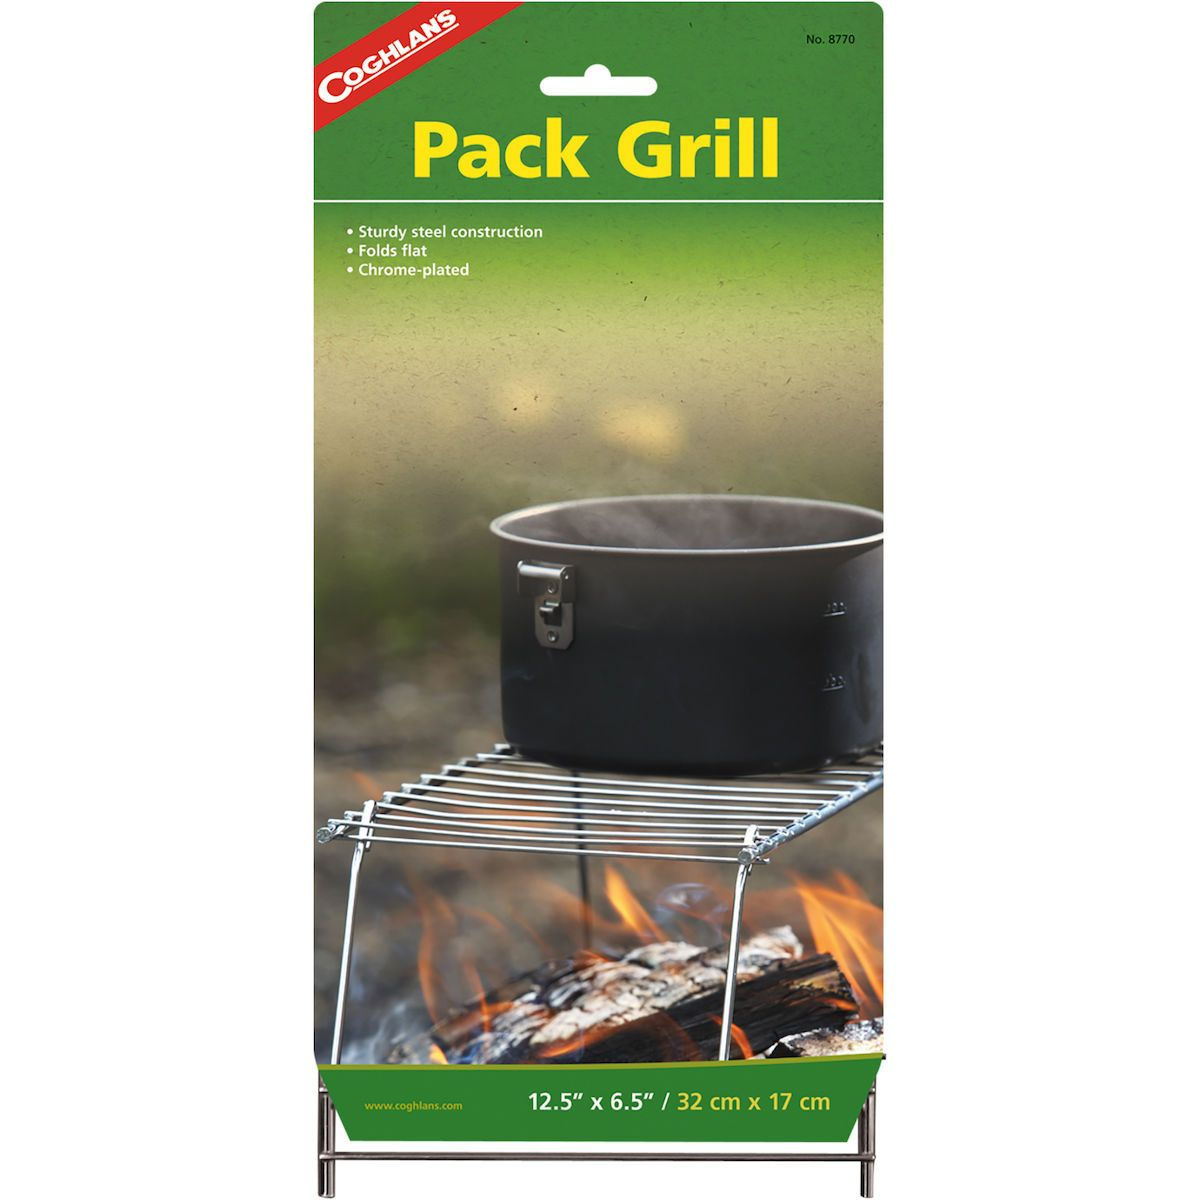 Coghlan S Pack Grill Outdoor Cooking Stove Camping Grill Camping Utensil Set